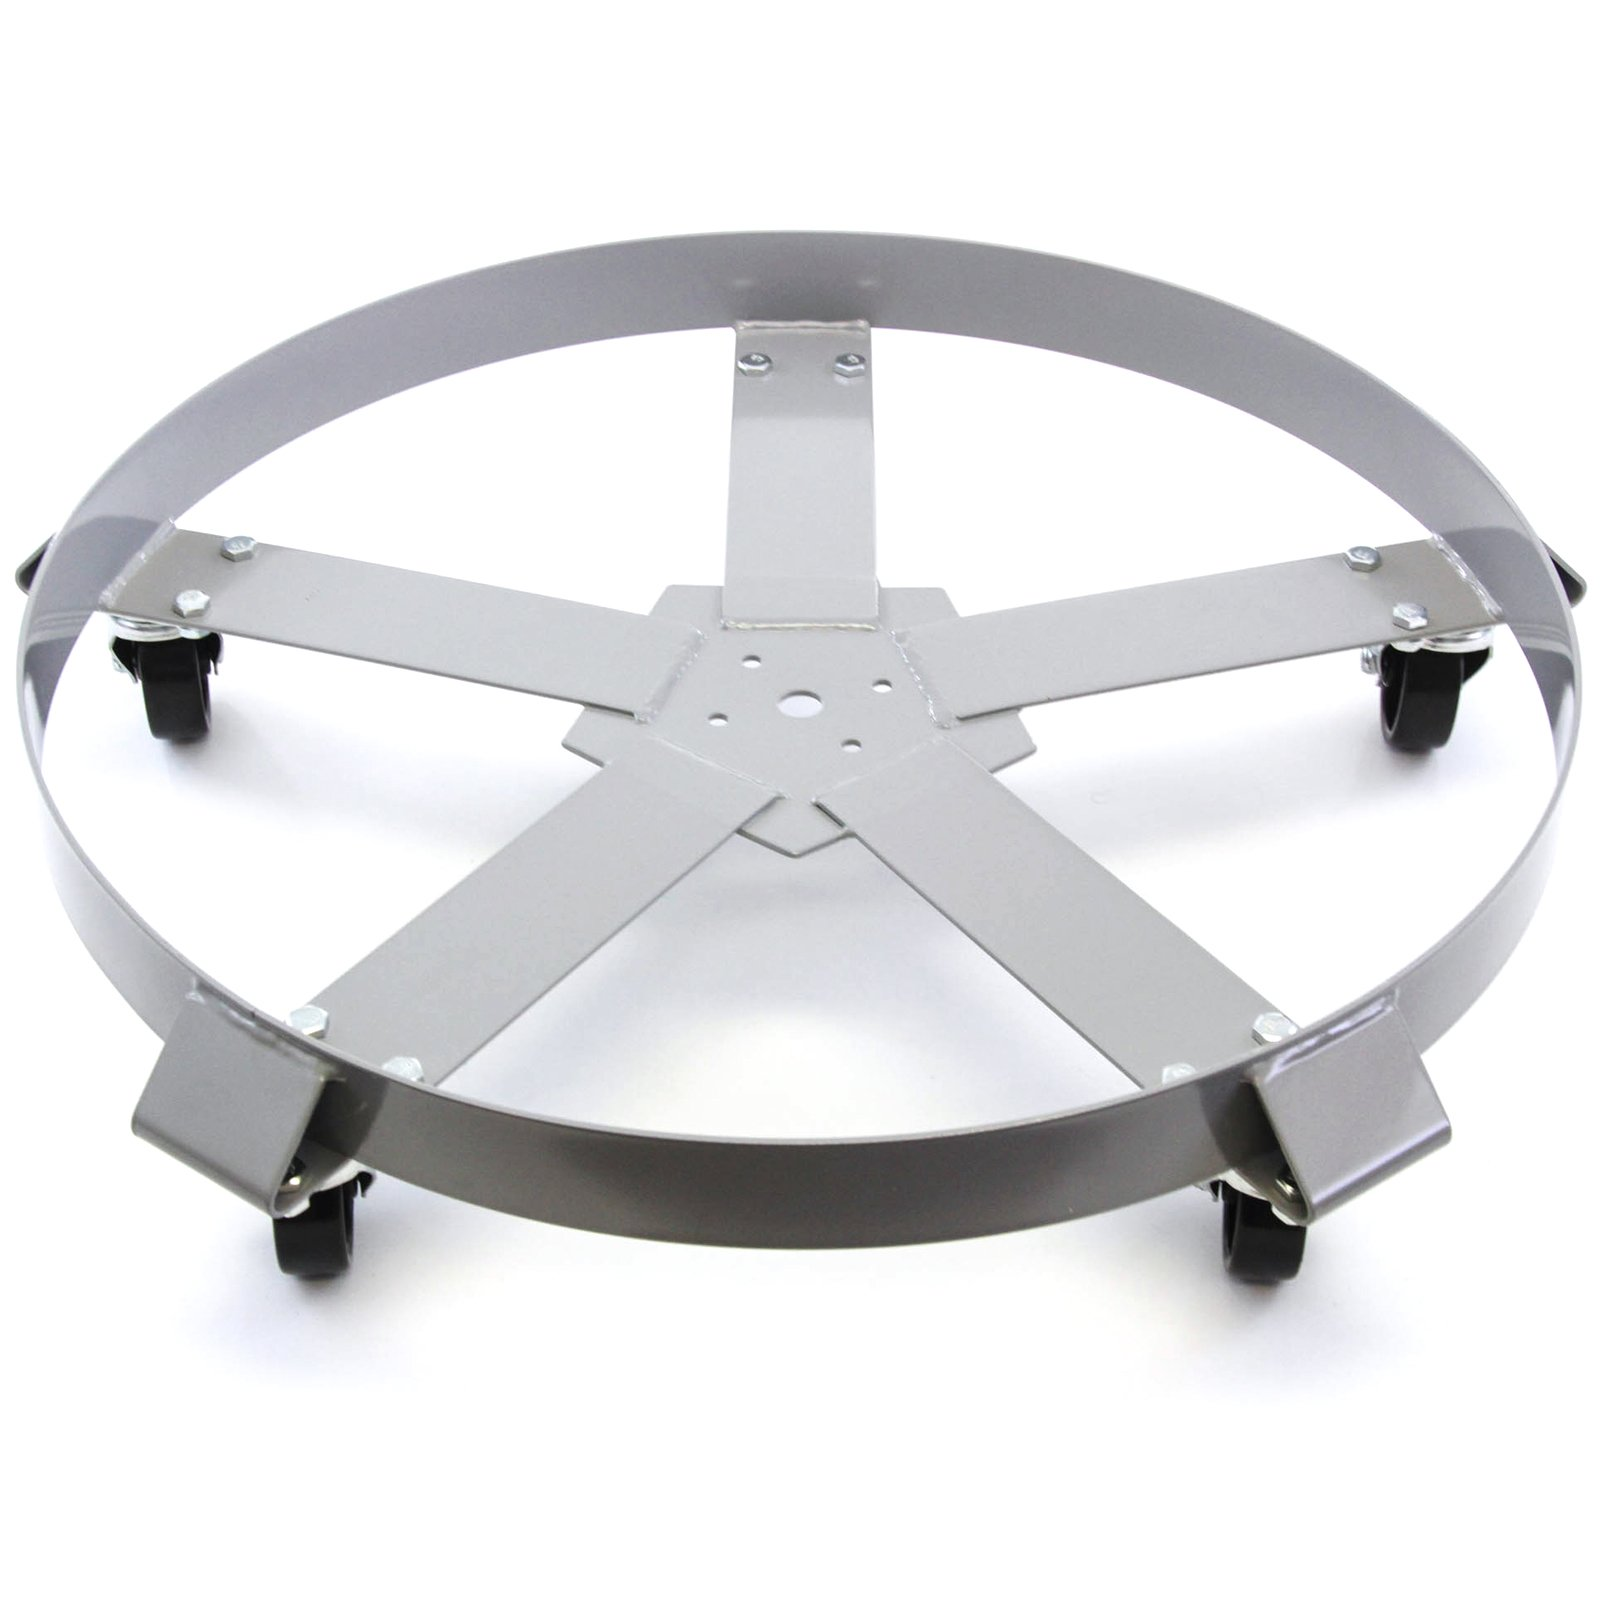 Extra Heavy Duty 55 Gallon Drum Dolly Swivel Casters Steel Frame Non Tip 1250 lbs 5 Wheel